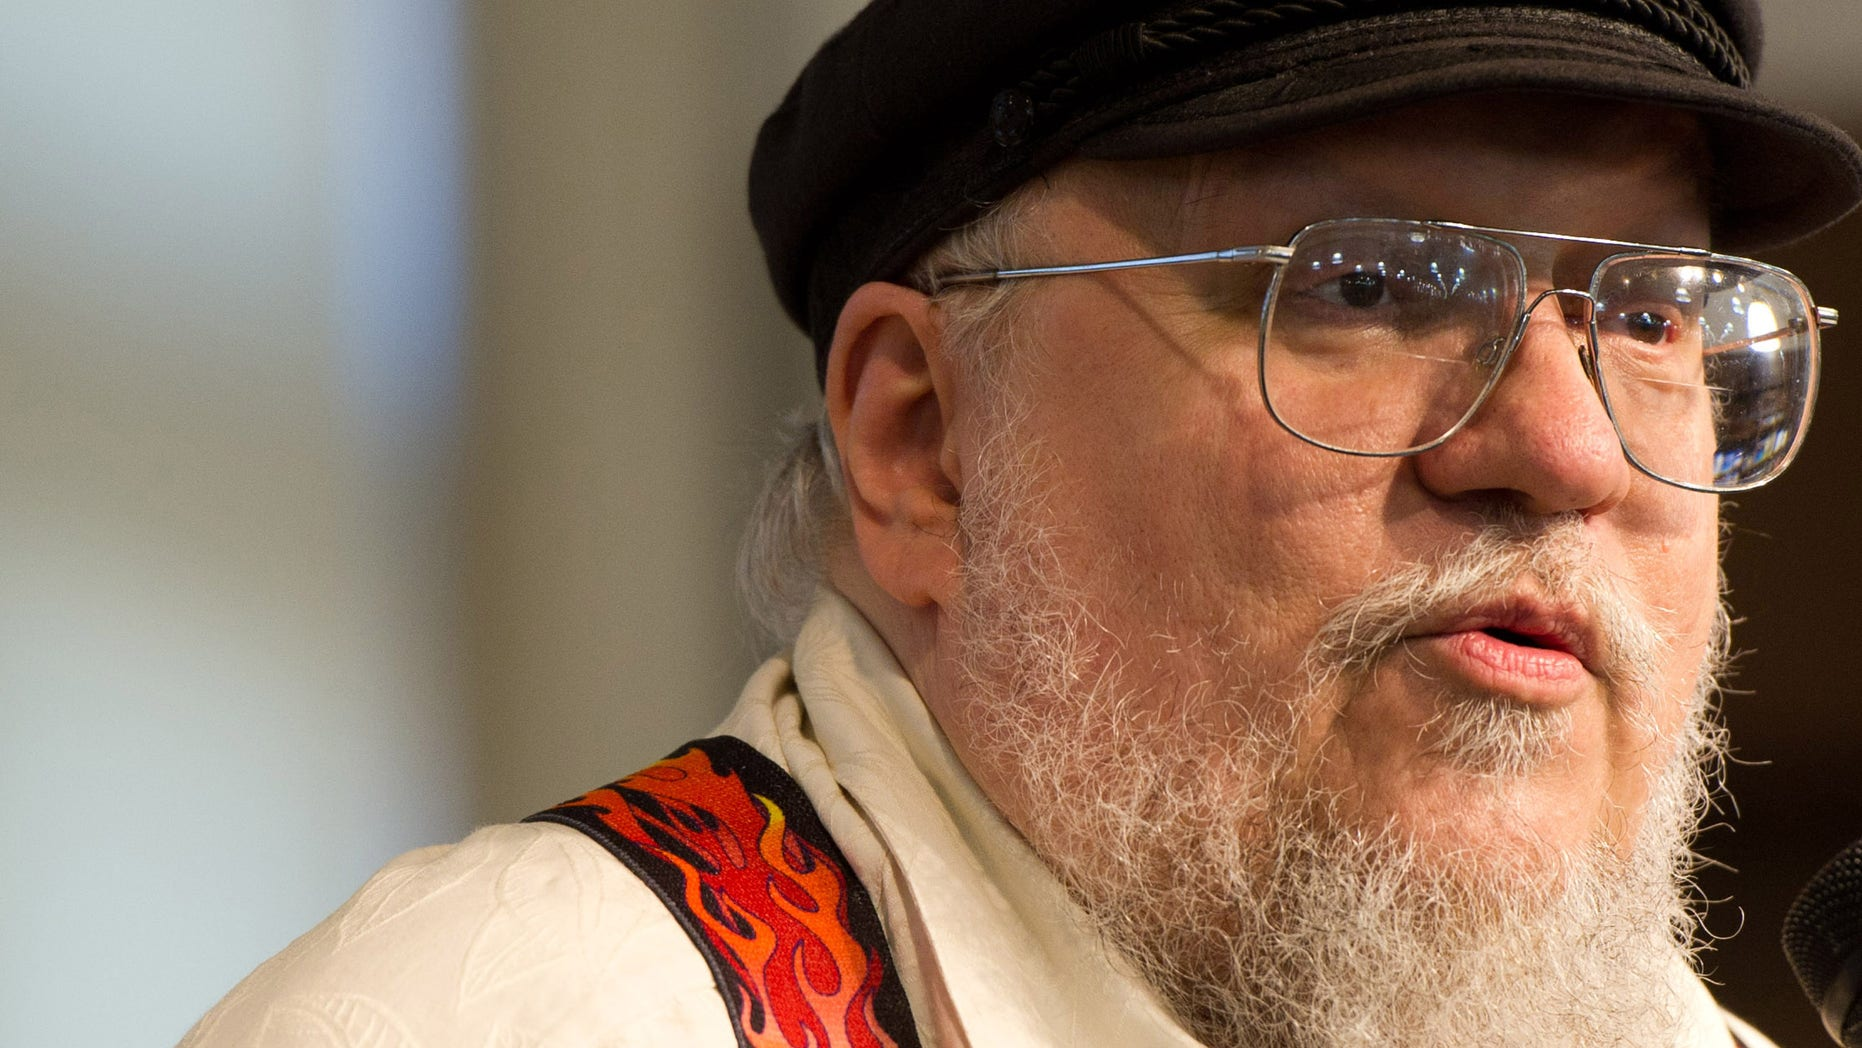 """In this July 14, 2011 file photo, author George R.R. Martin attends a book signing for """"A Dance with Dragons"""" at Barnes & Noble in New York"""